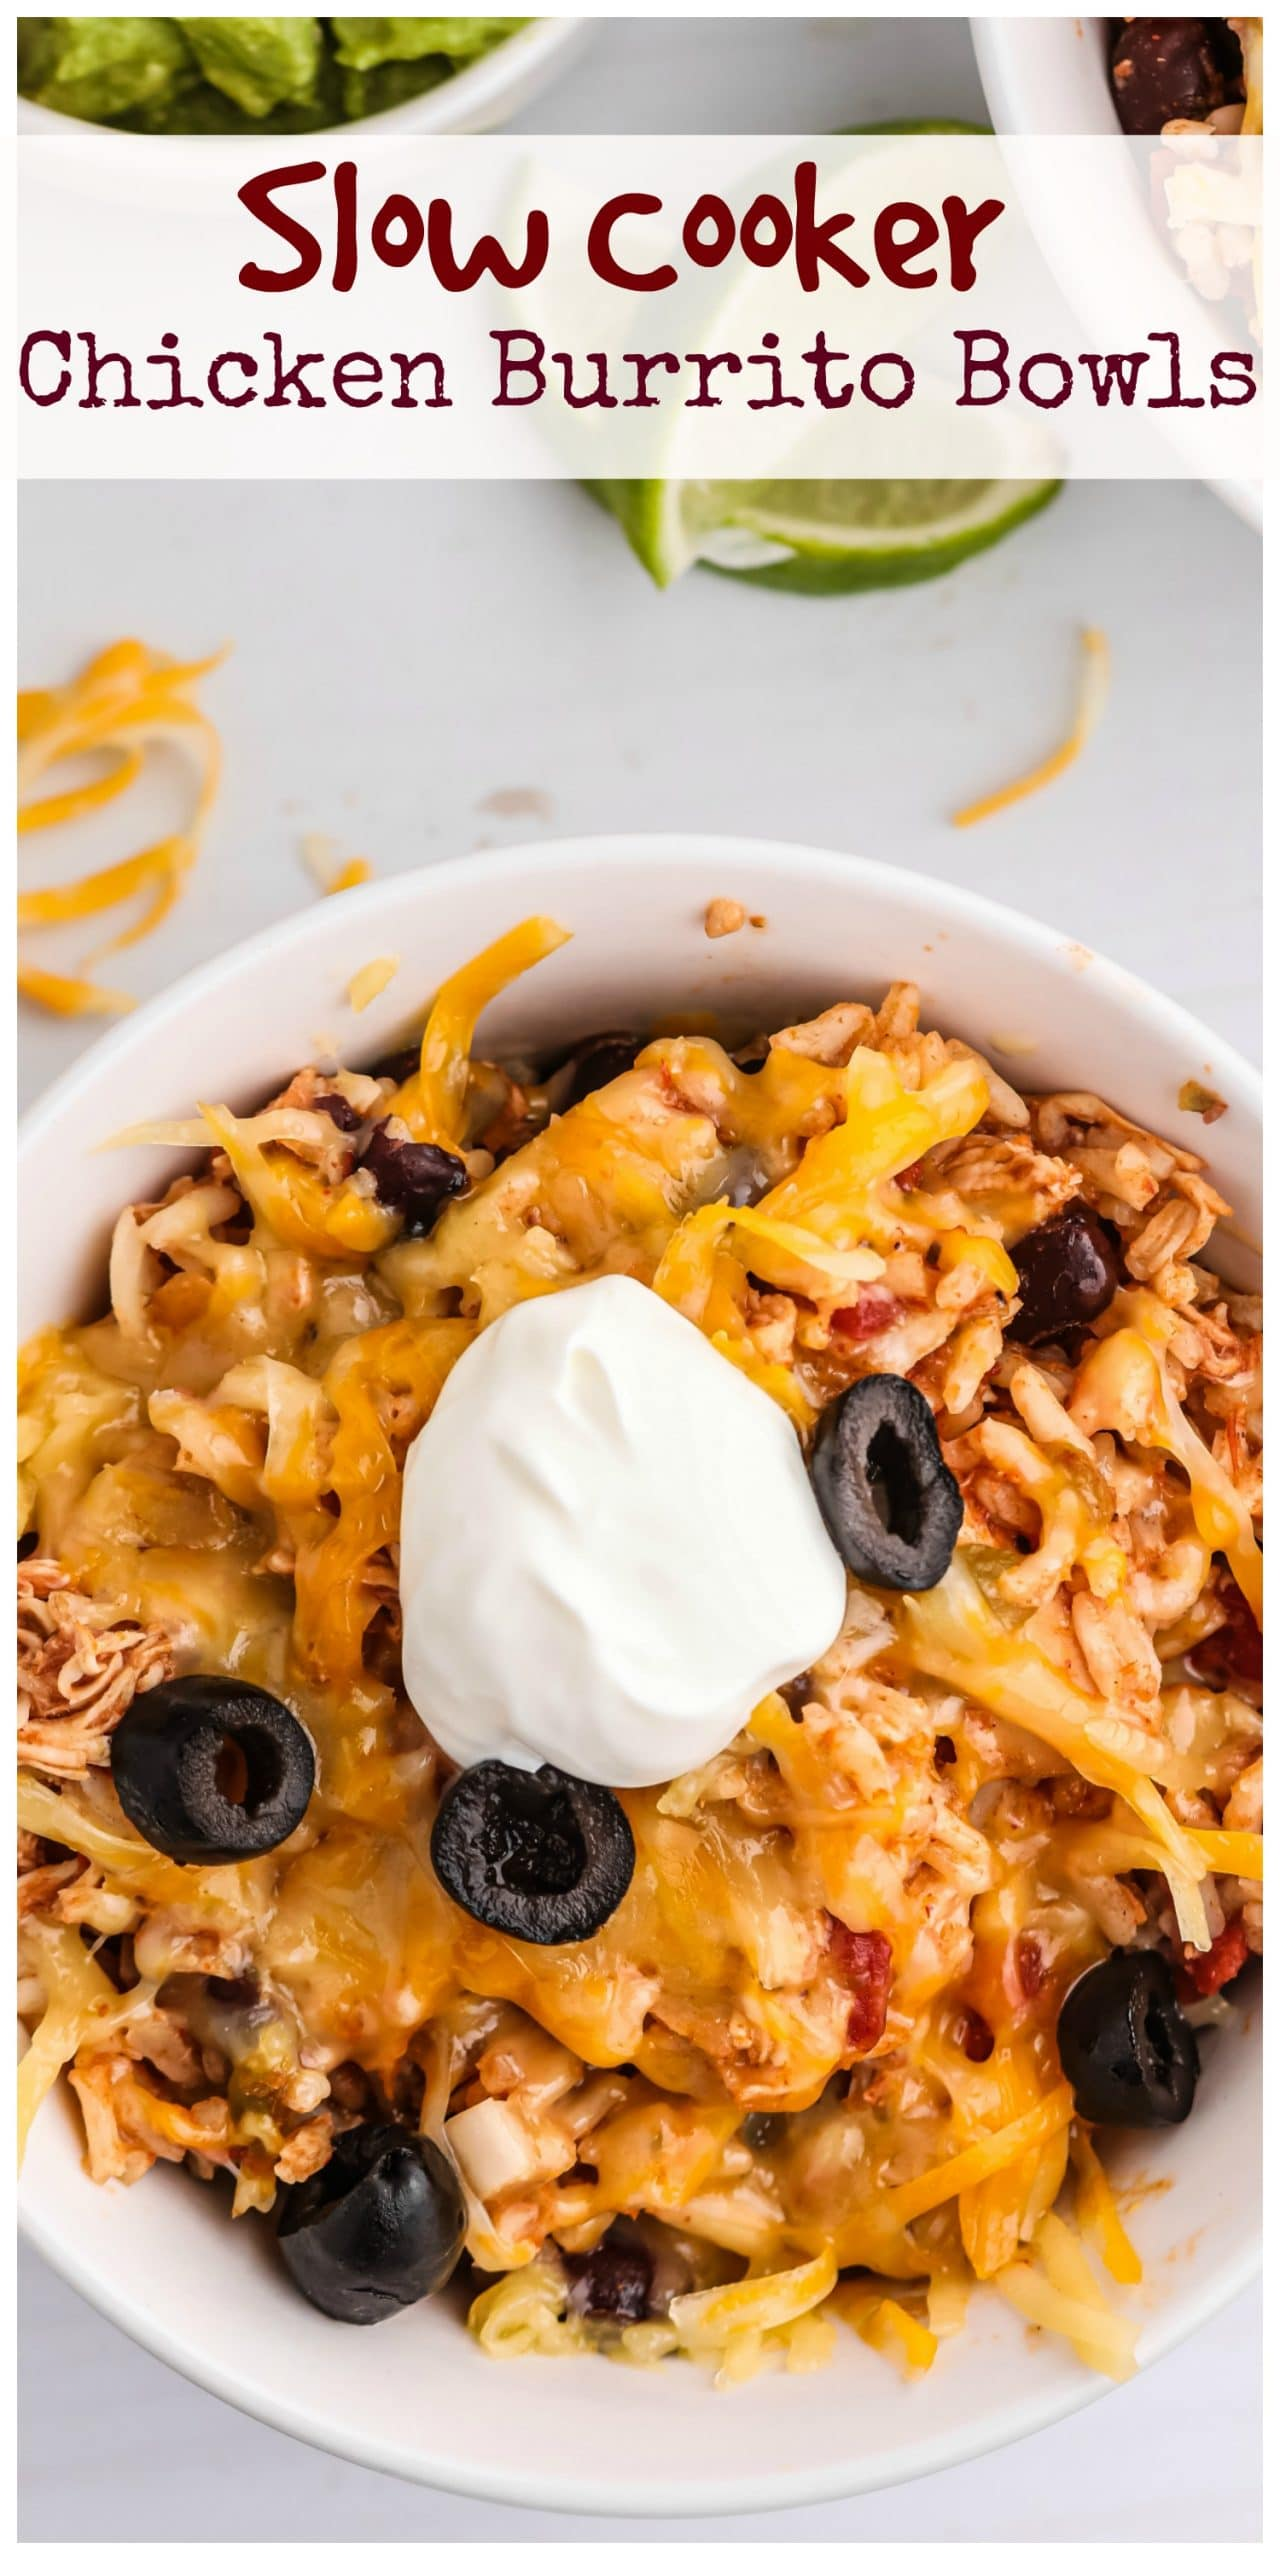 Slow Cooker Chicken Burrito Bowls - ten minutes of prep work rewards you later with a delicious and hearty dinner. Just dish yourself a bowl and garnish to your liking. via @cmpollak1